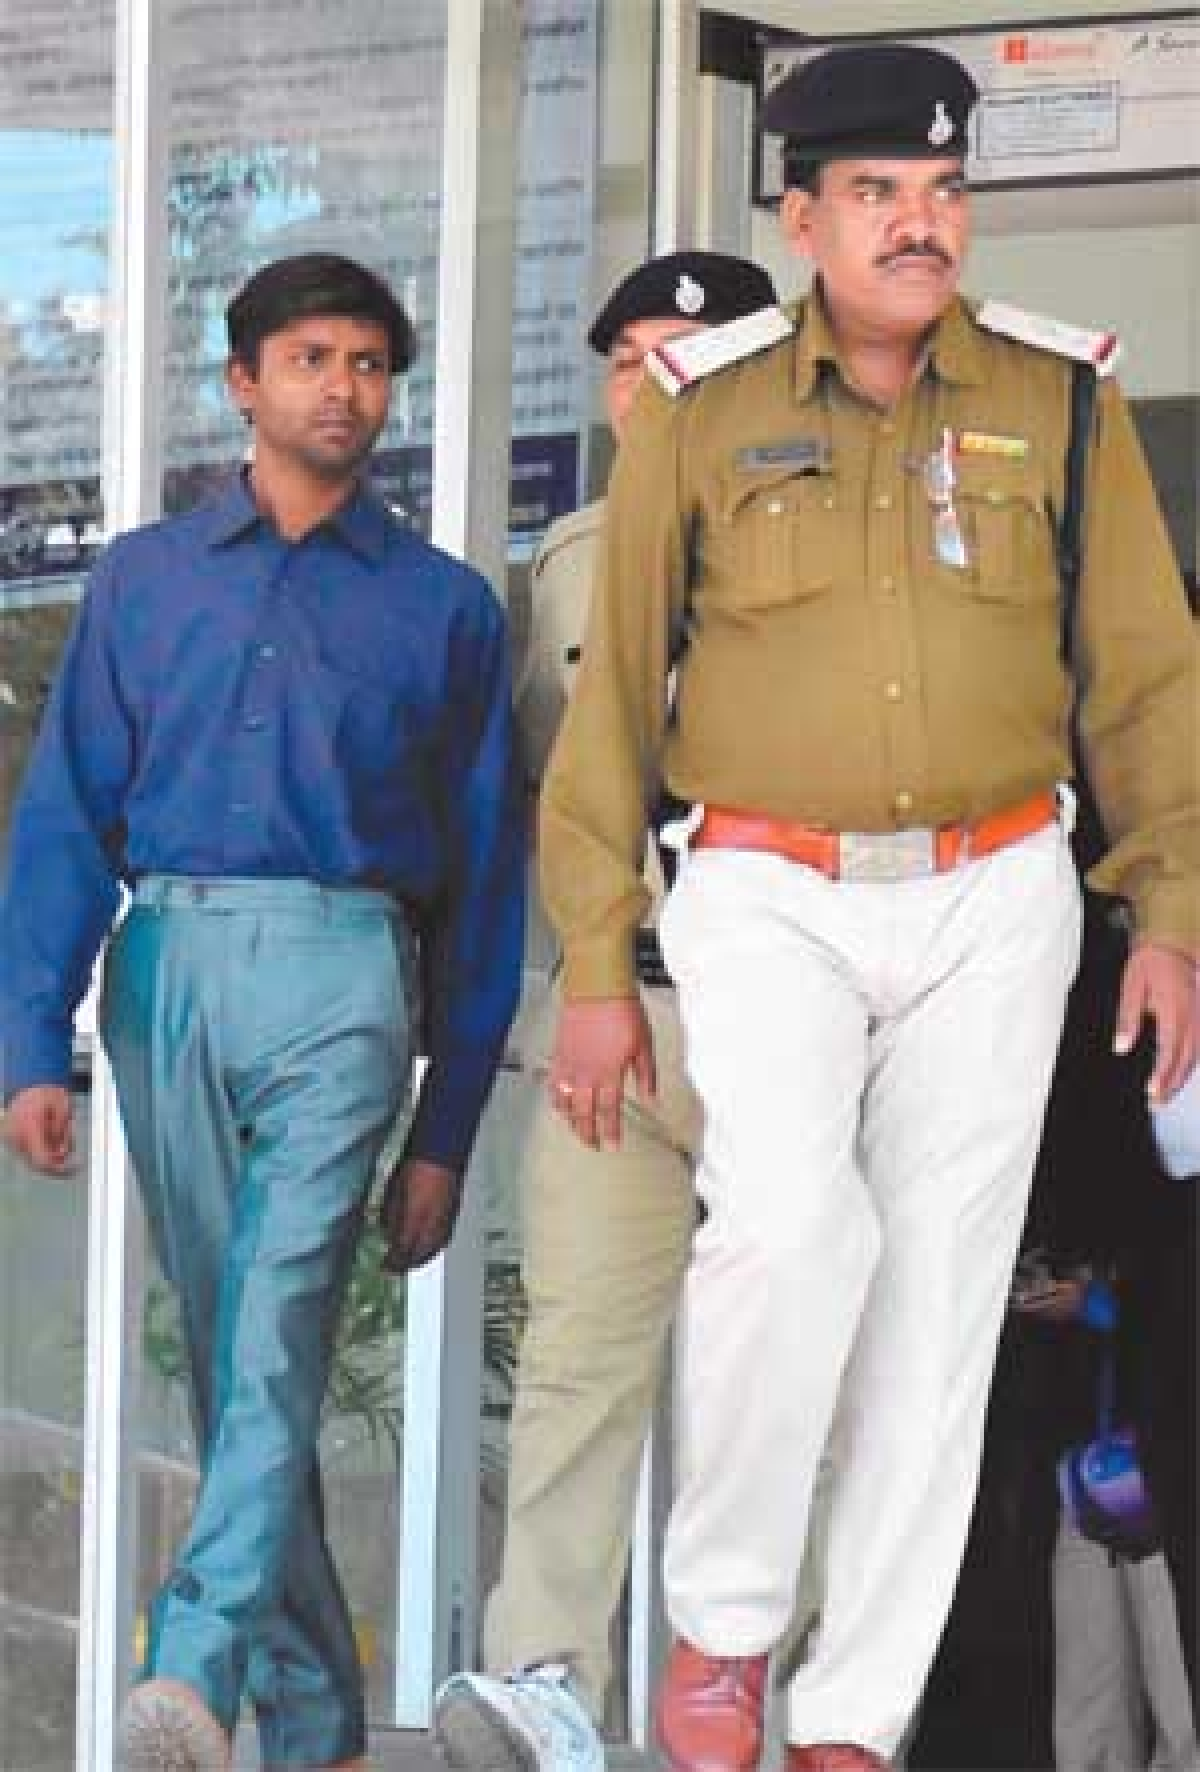 Bhopal: 'Dhrishyam' gave him idea of how to dispose of body